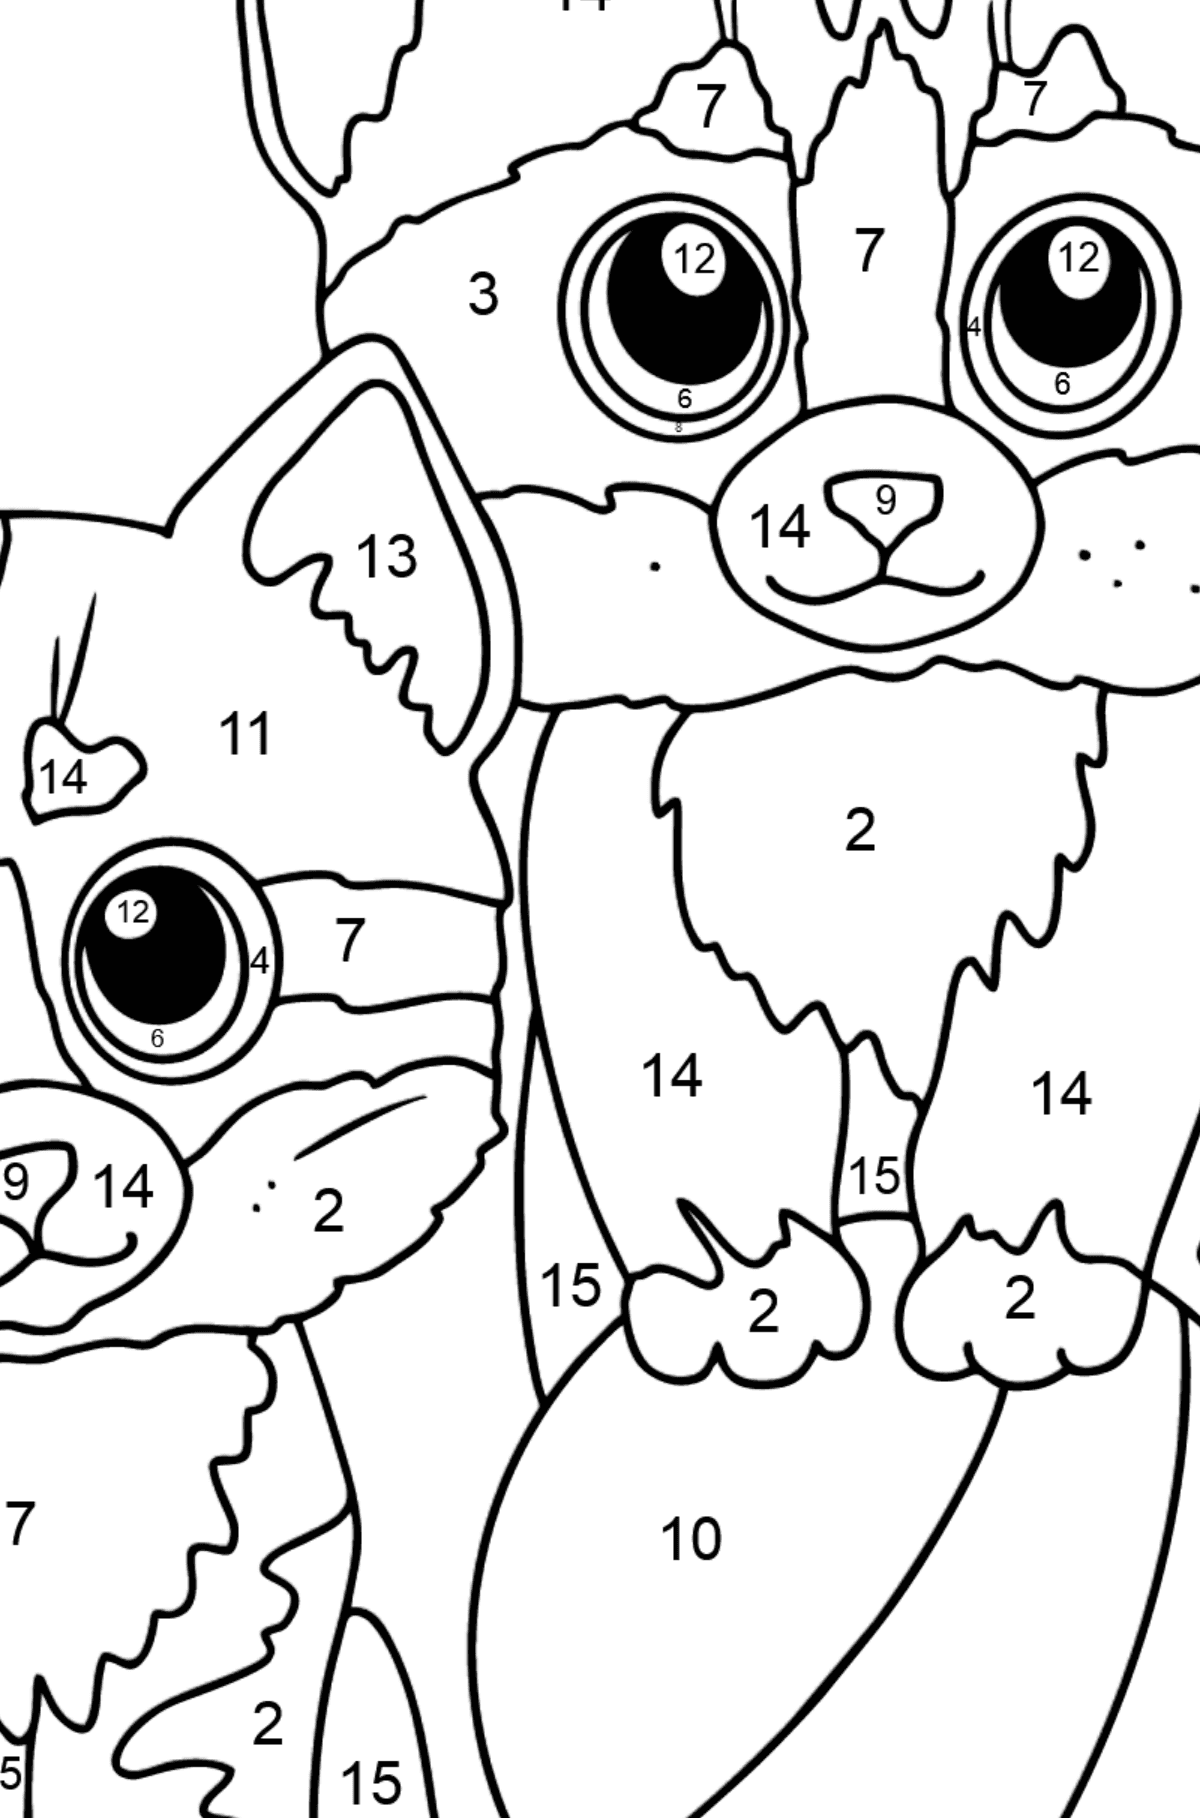 Coloring Page - Two Kittens with a Ball - Coloring by Numbers for Kids